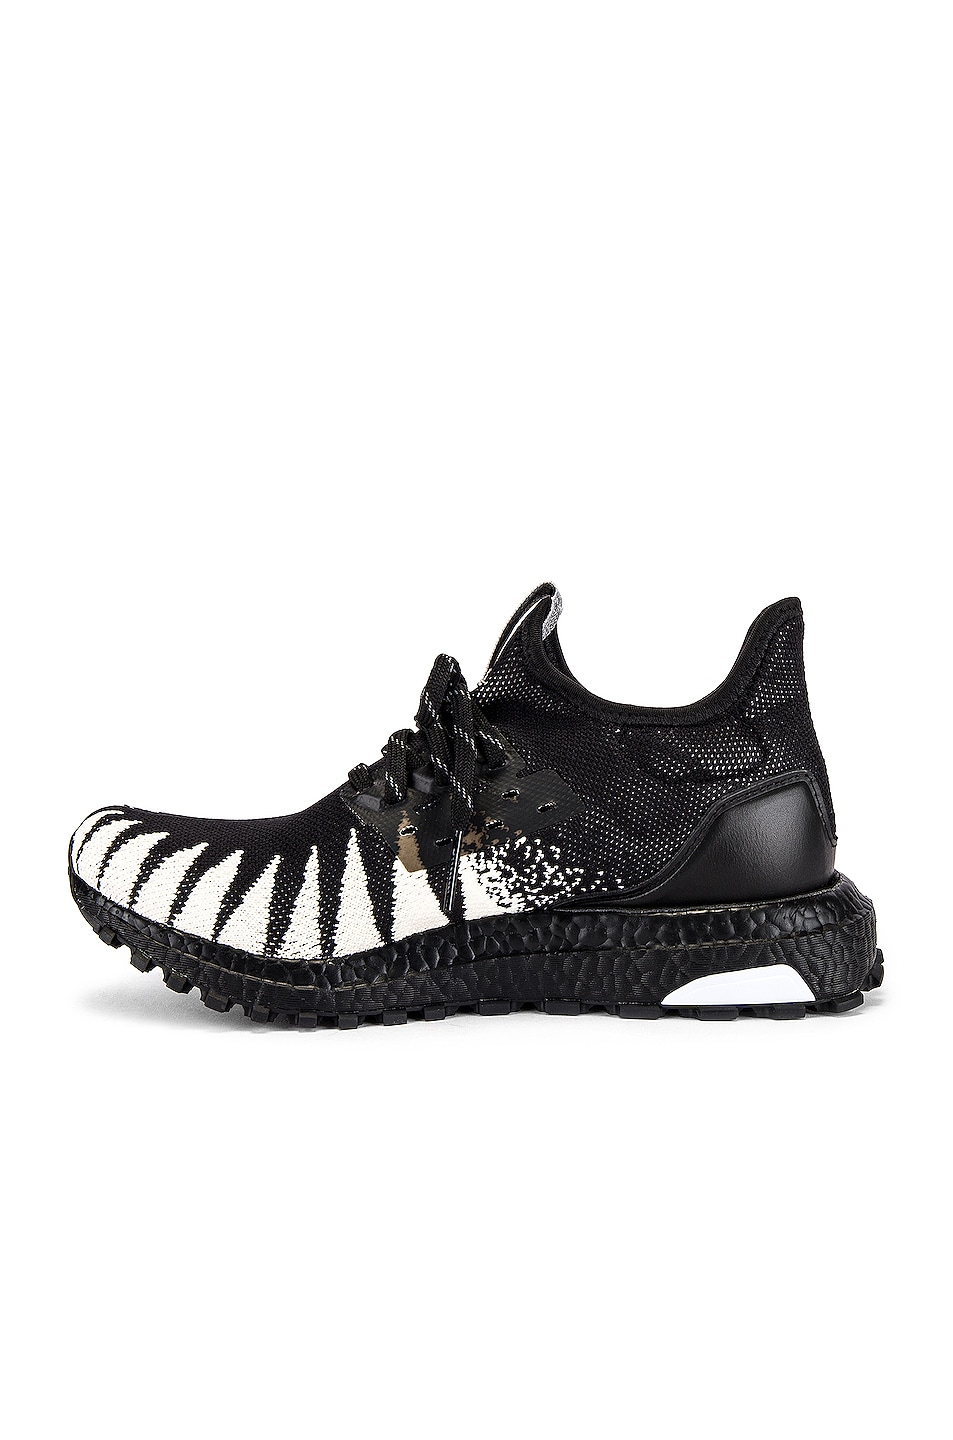 Image 5 of adidas Neighborhood UB All Terrain in Black